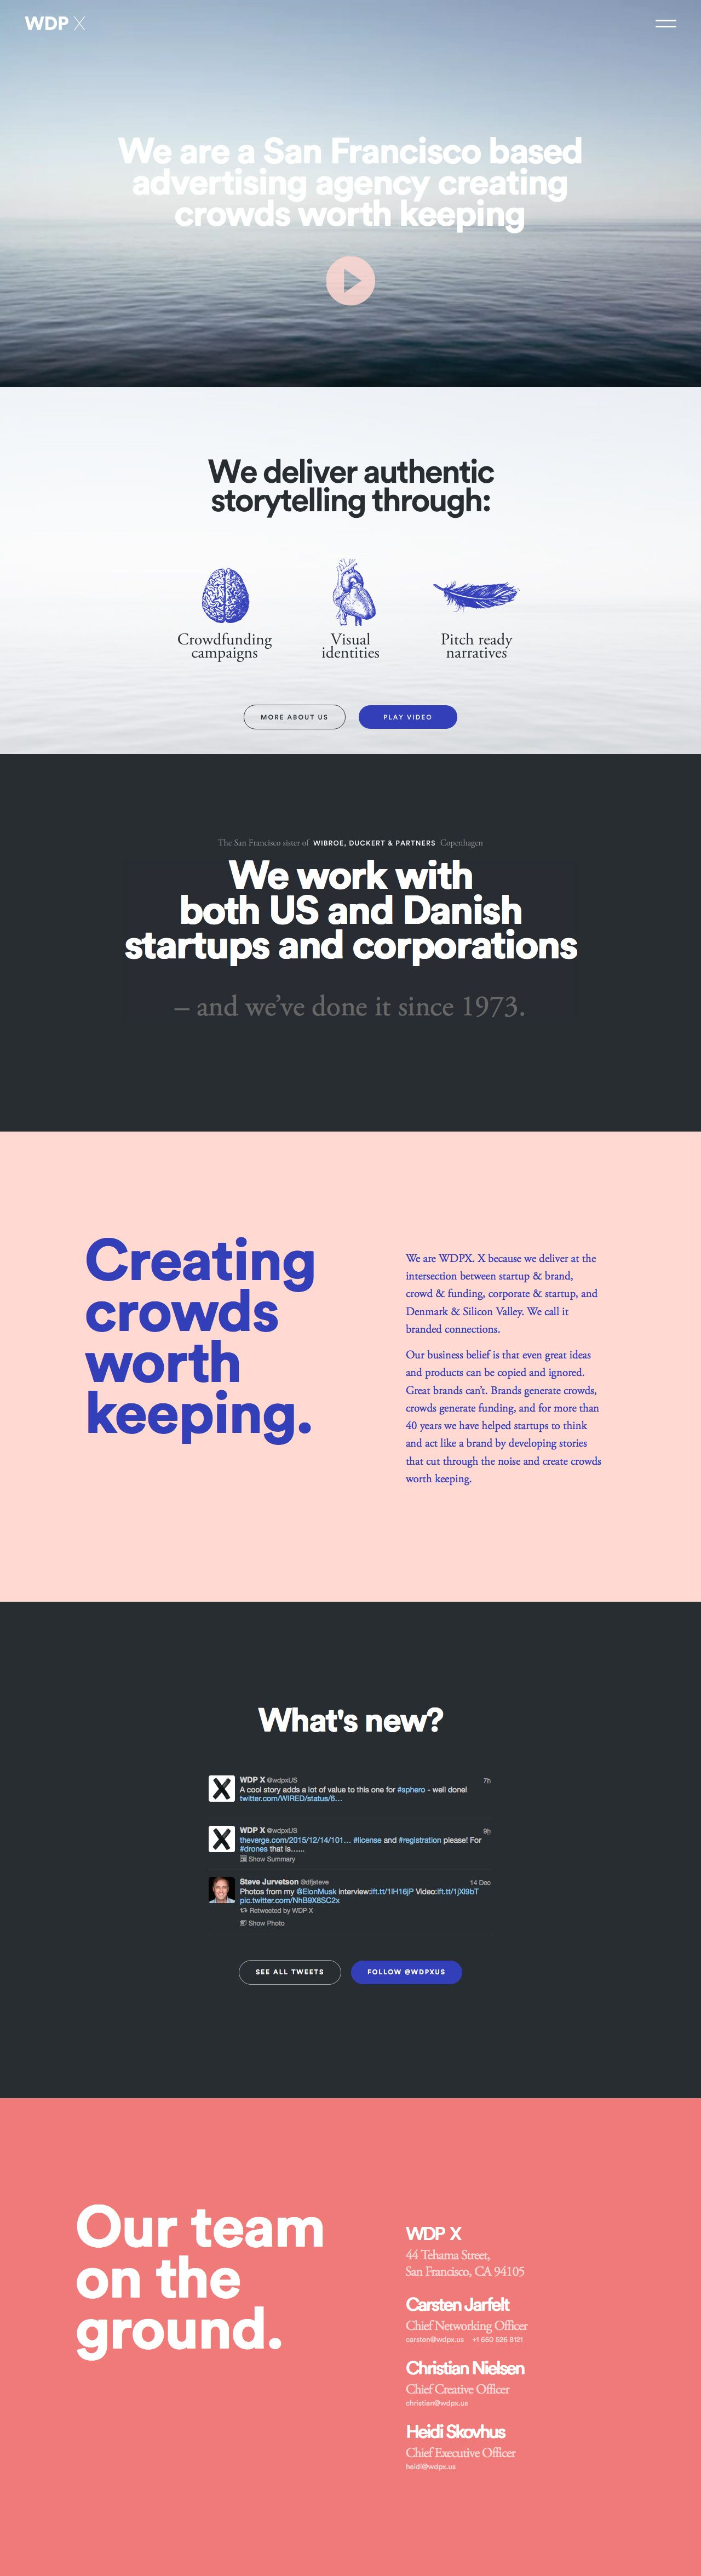 Clear big typography and good whitespace in this One Pager for advertising agency, WDP X.